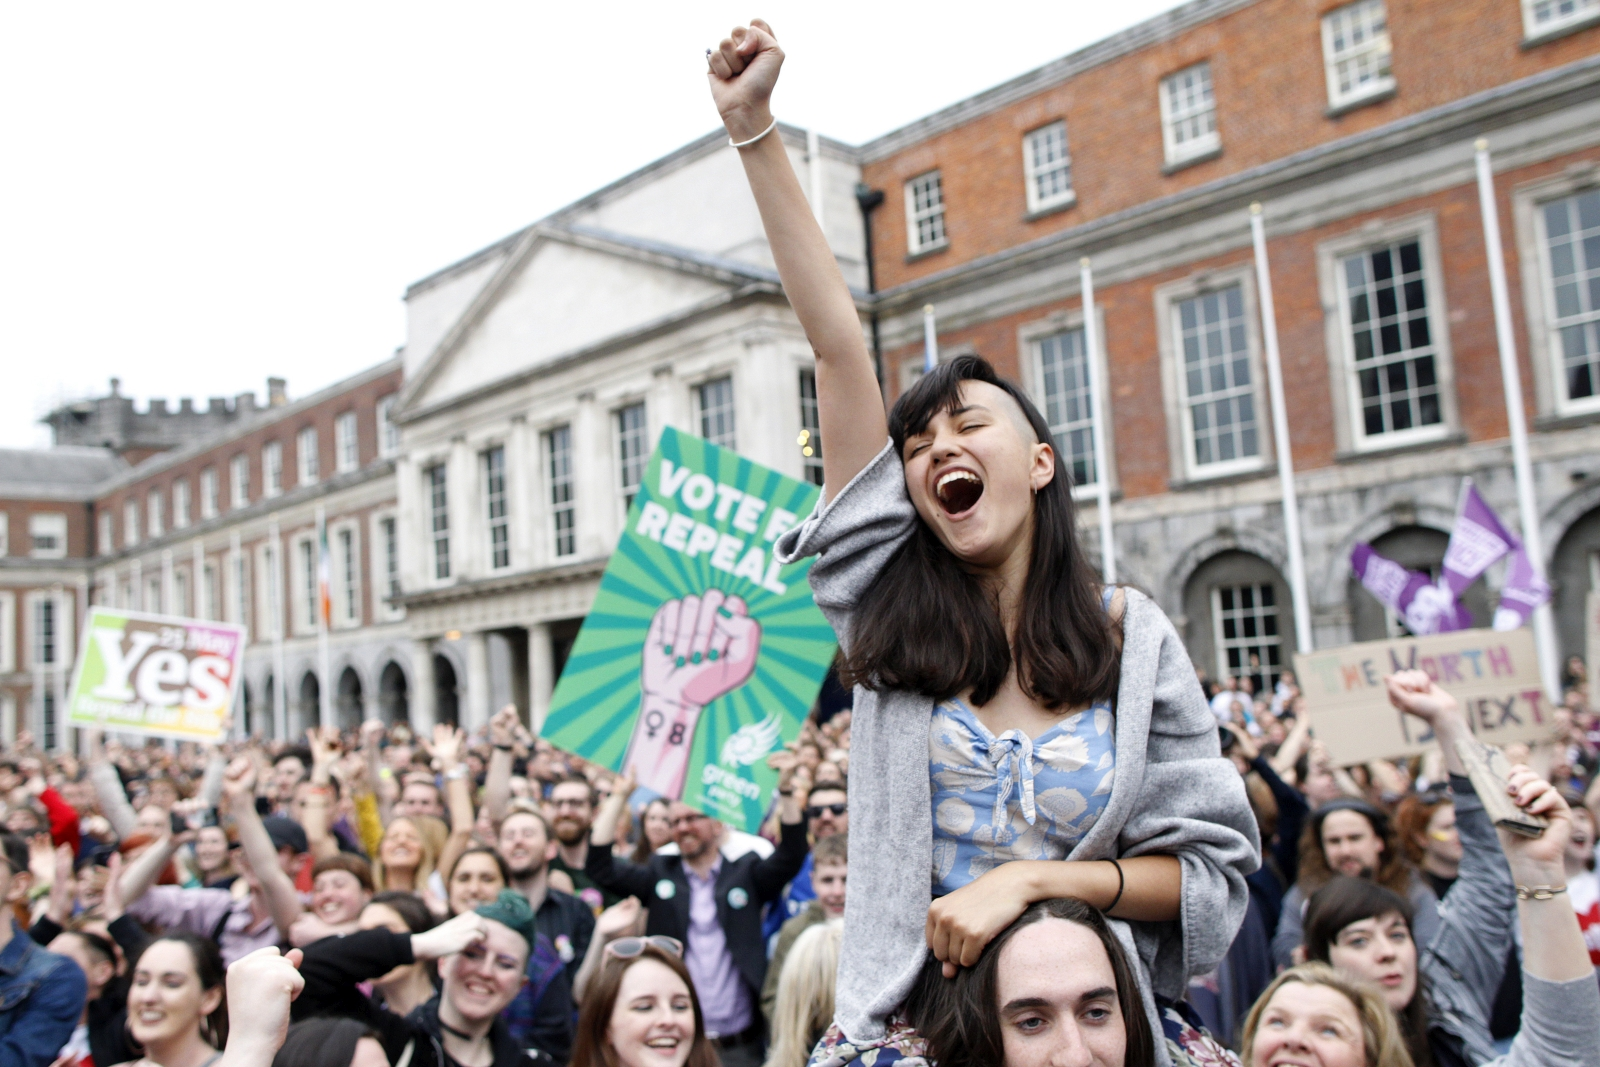 A woman from the'Yes' campaign reacts after the final result was announced, after the Irish referendum on the 8th Amendment of the Irish Constitution at Dublin Castle, in Dublin, Ireland, Saturday May 26, 2018. The prime minister of Ireland says the passage of a referendum paving the way for legalized abortions is a historic day for his country and a great act of democracy. (AP Photo/Peter Morrison)